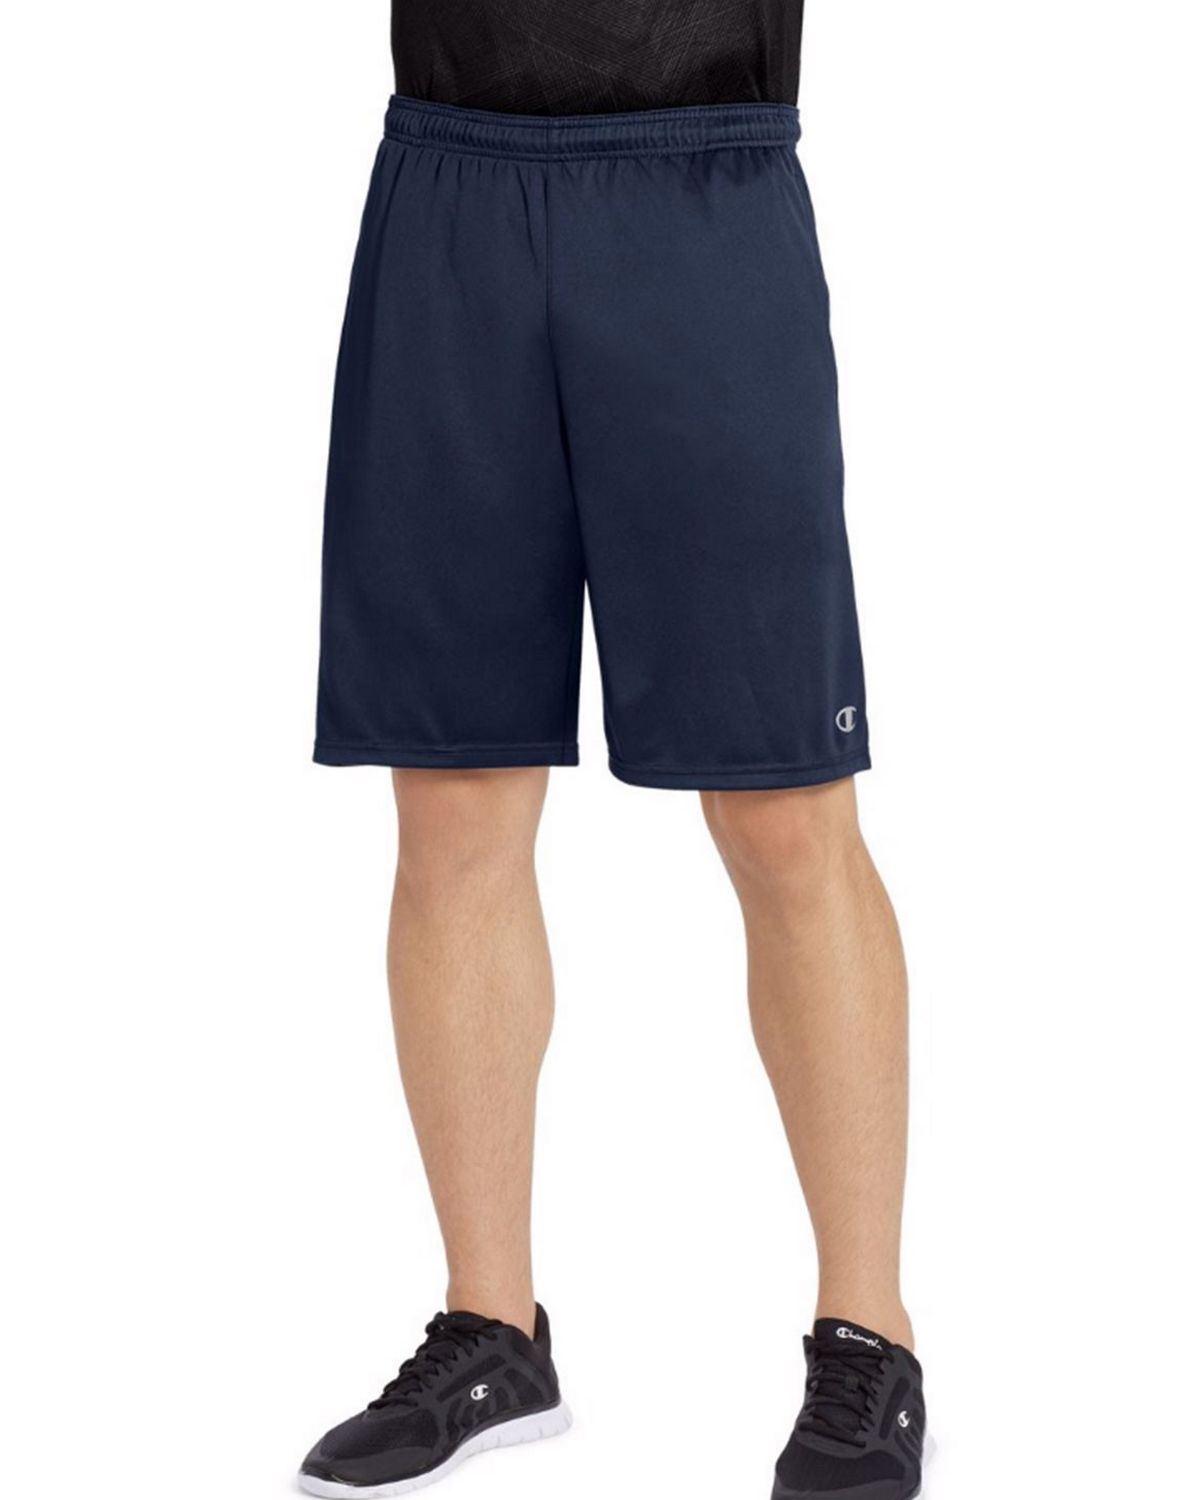 Champion 88125 Vapor Mens Shorts - Navy - L 88125